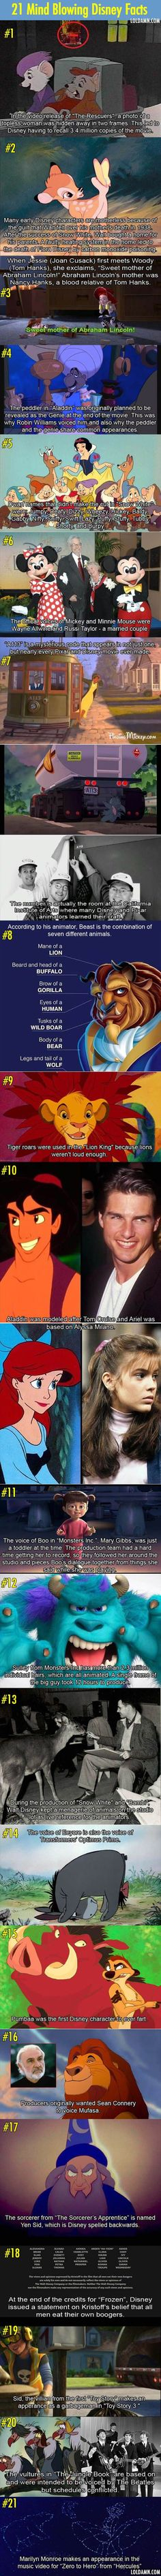 21 Fun DIsney Facts